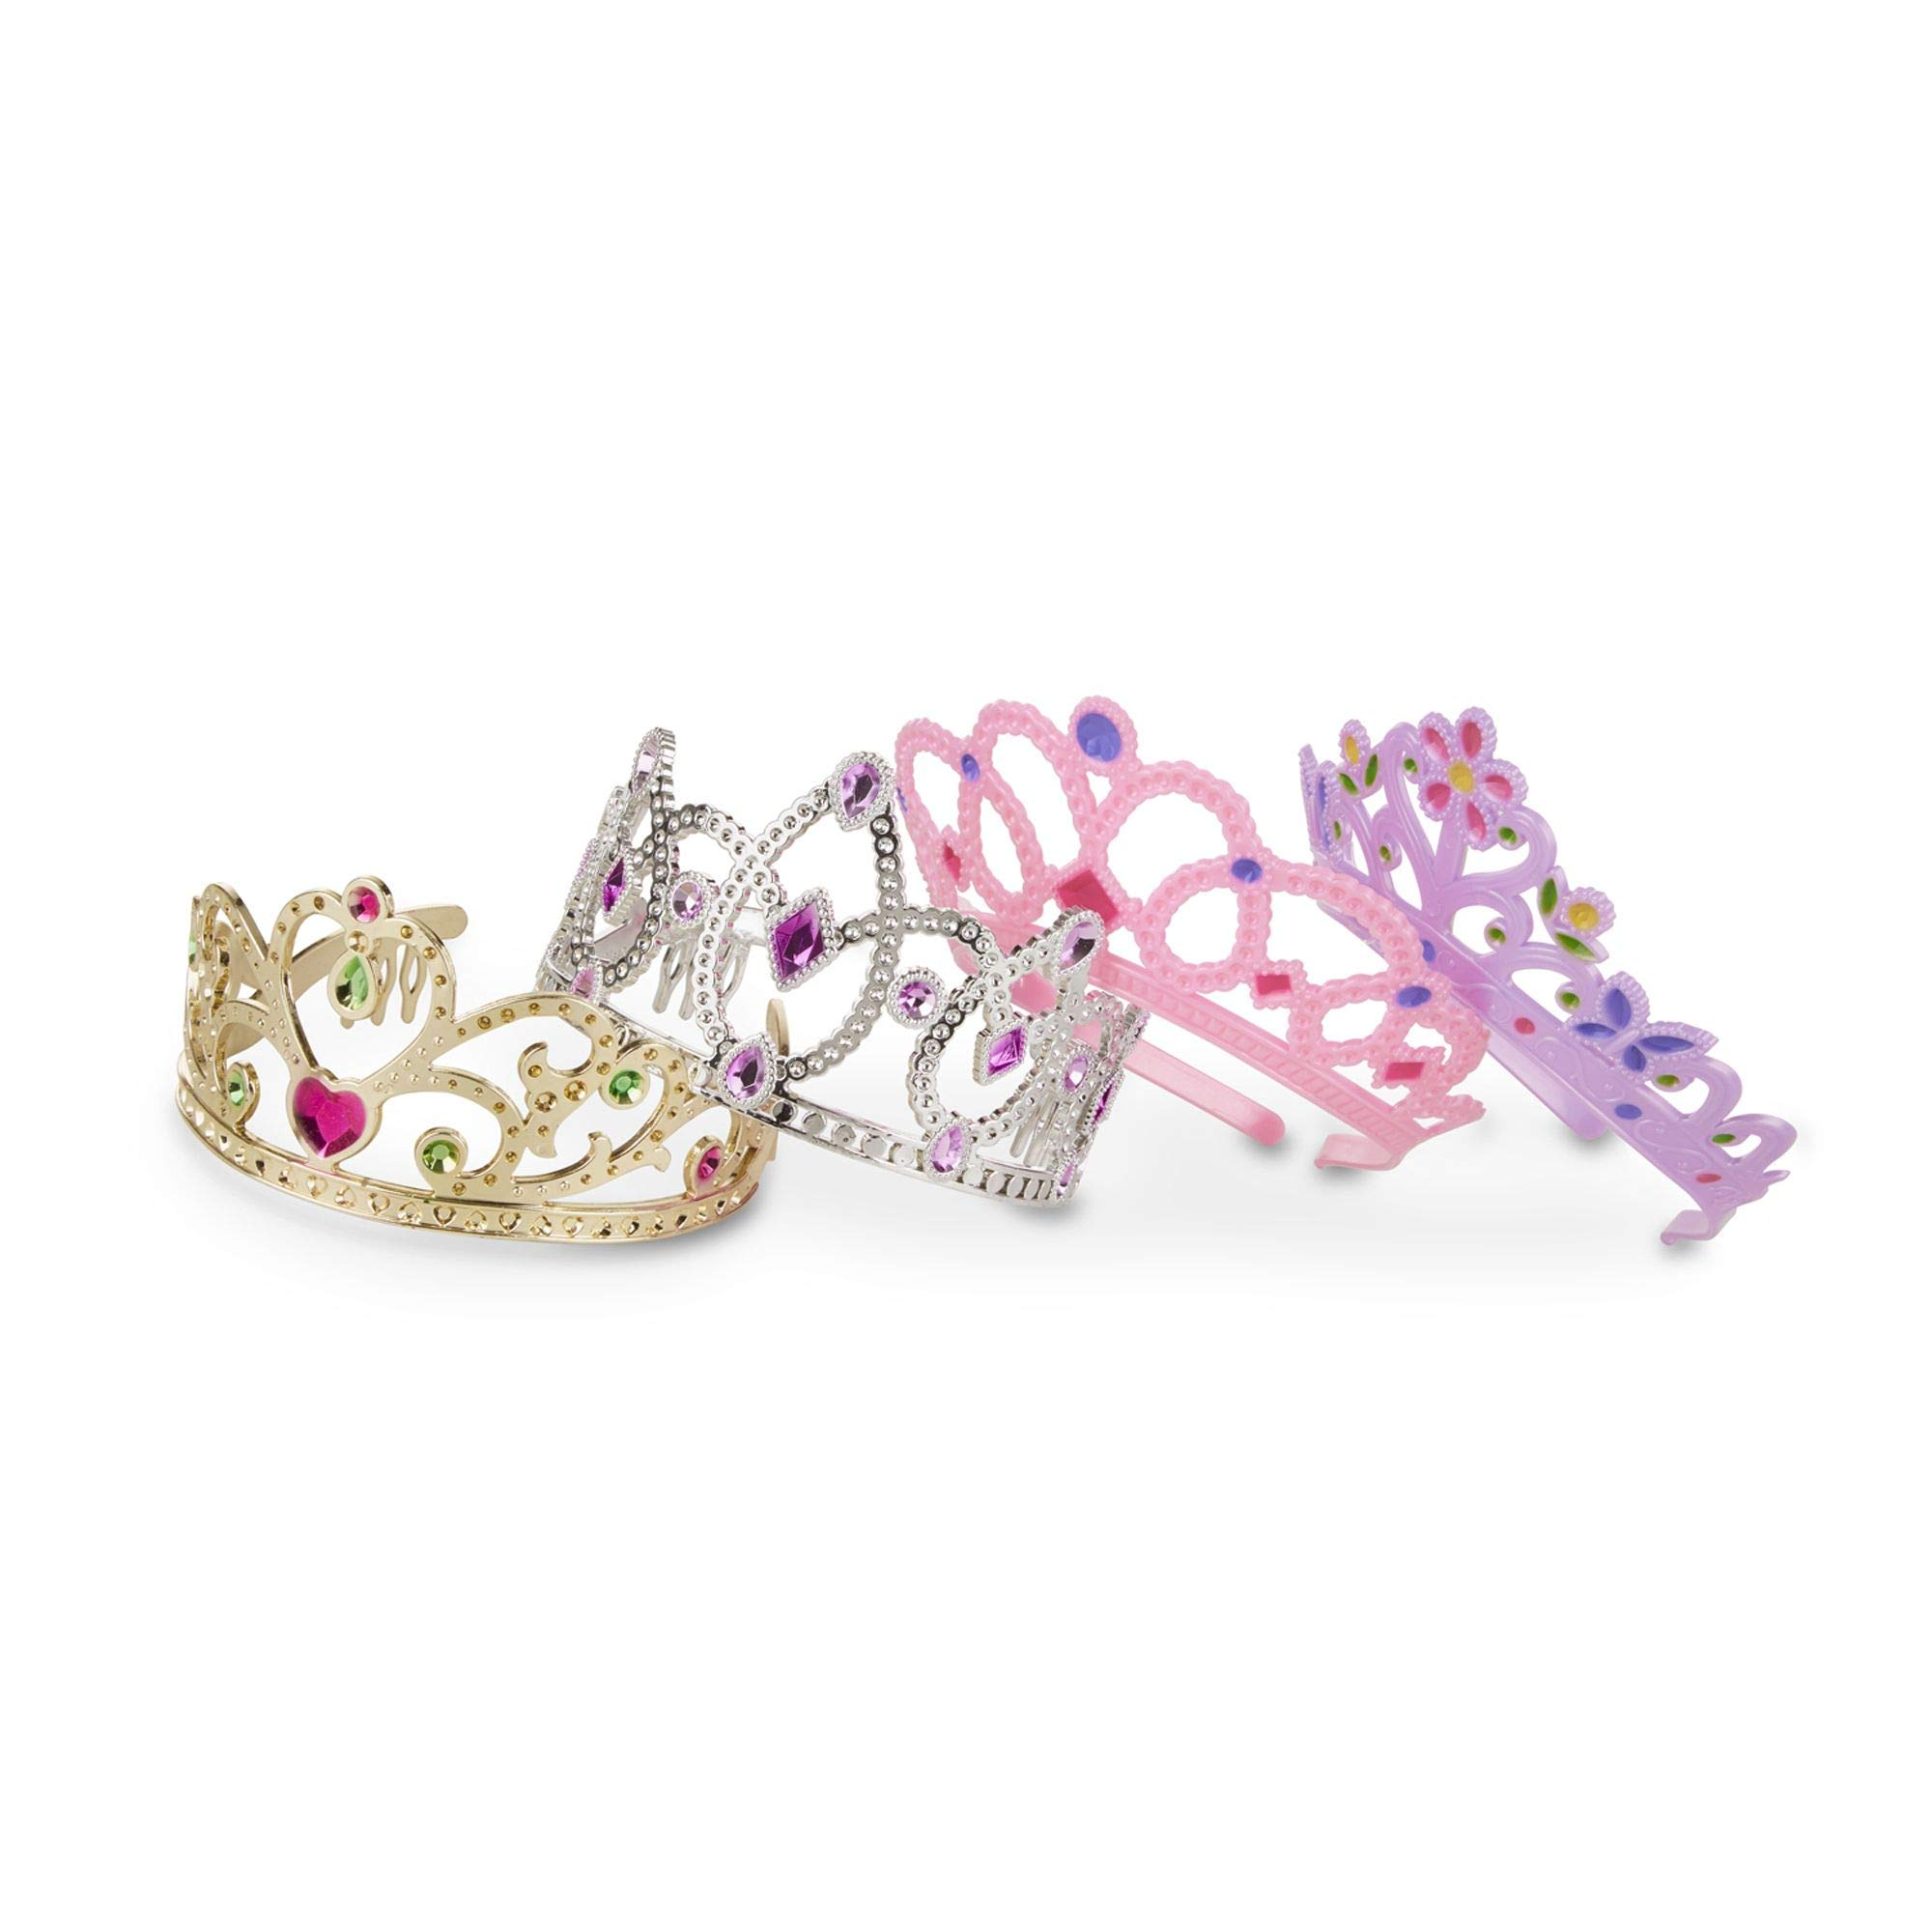 """Melissa & Doug Role-Play Collection Crown Jewels Tiaras, Pretend Play, Durable Construction, 4 Dress-Up Tiaras and Crowns, 12"""" H x 8"""" W x 5"""" L"""